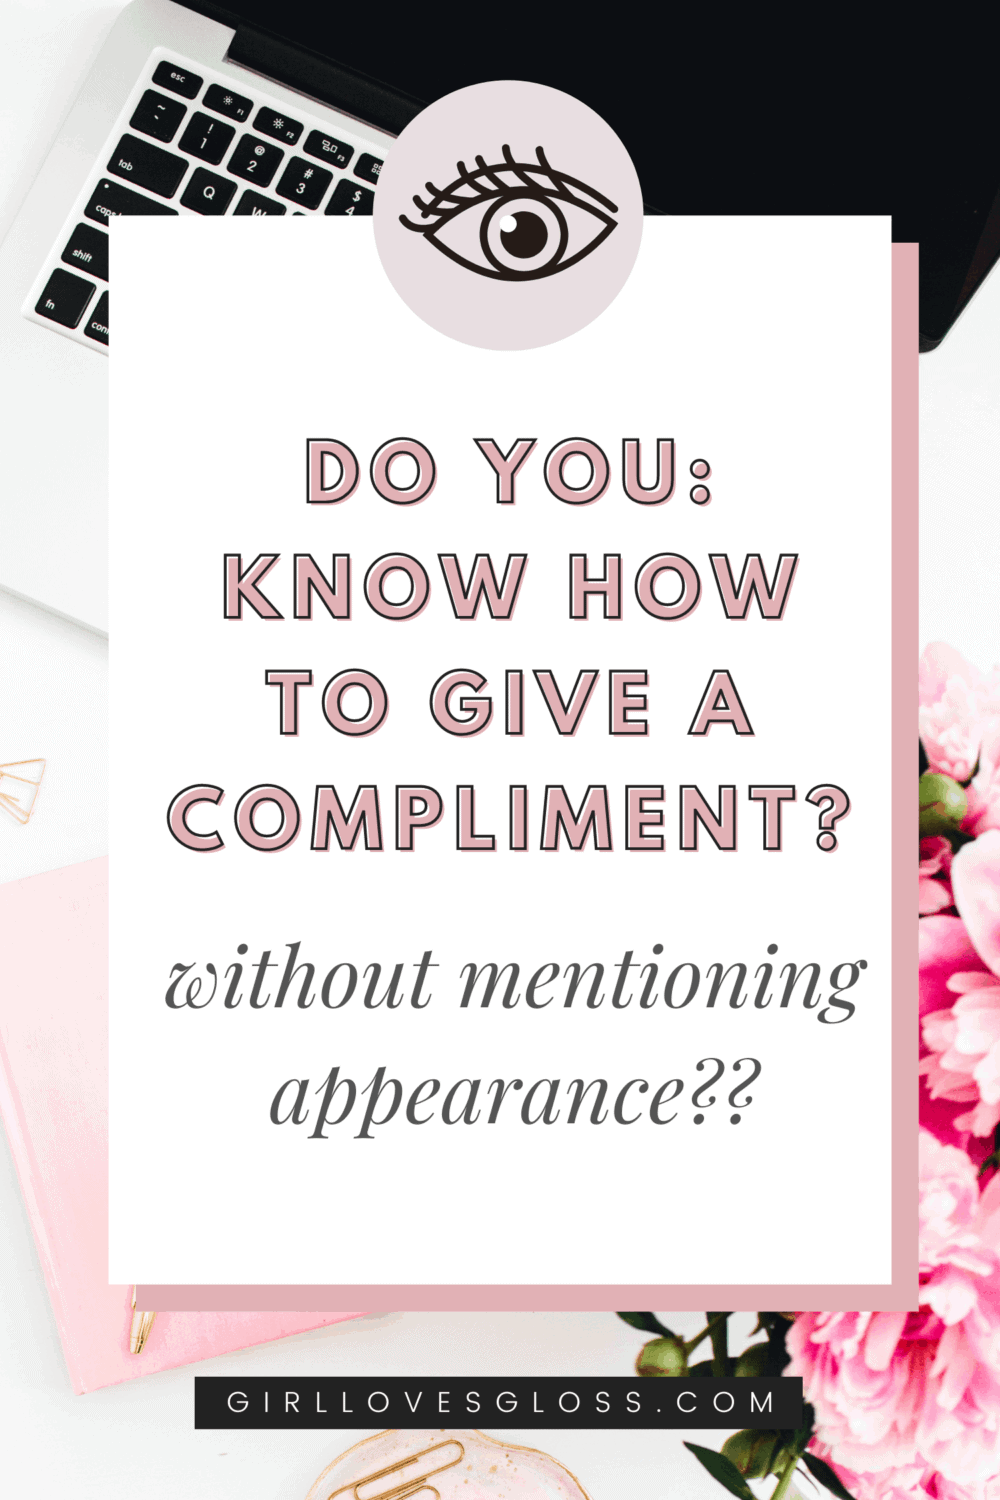 How to give a compliment without mentioning appearance